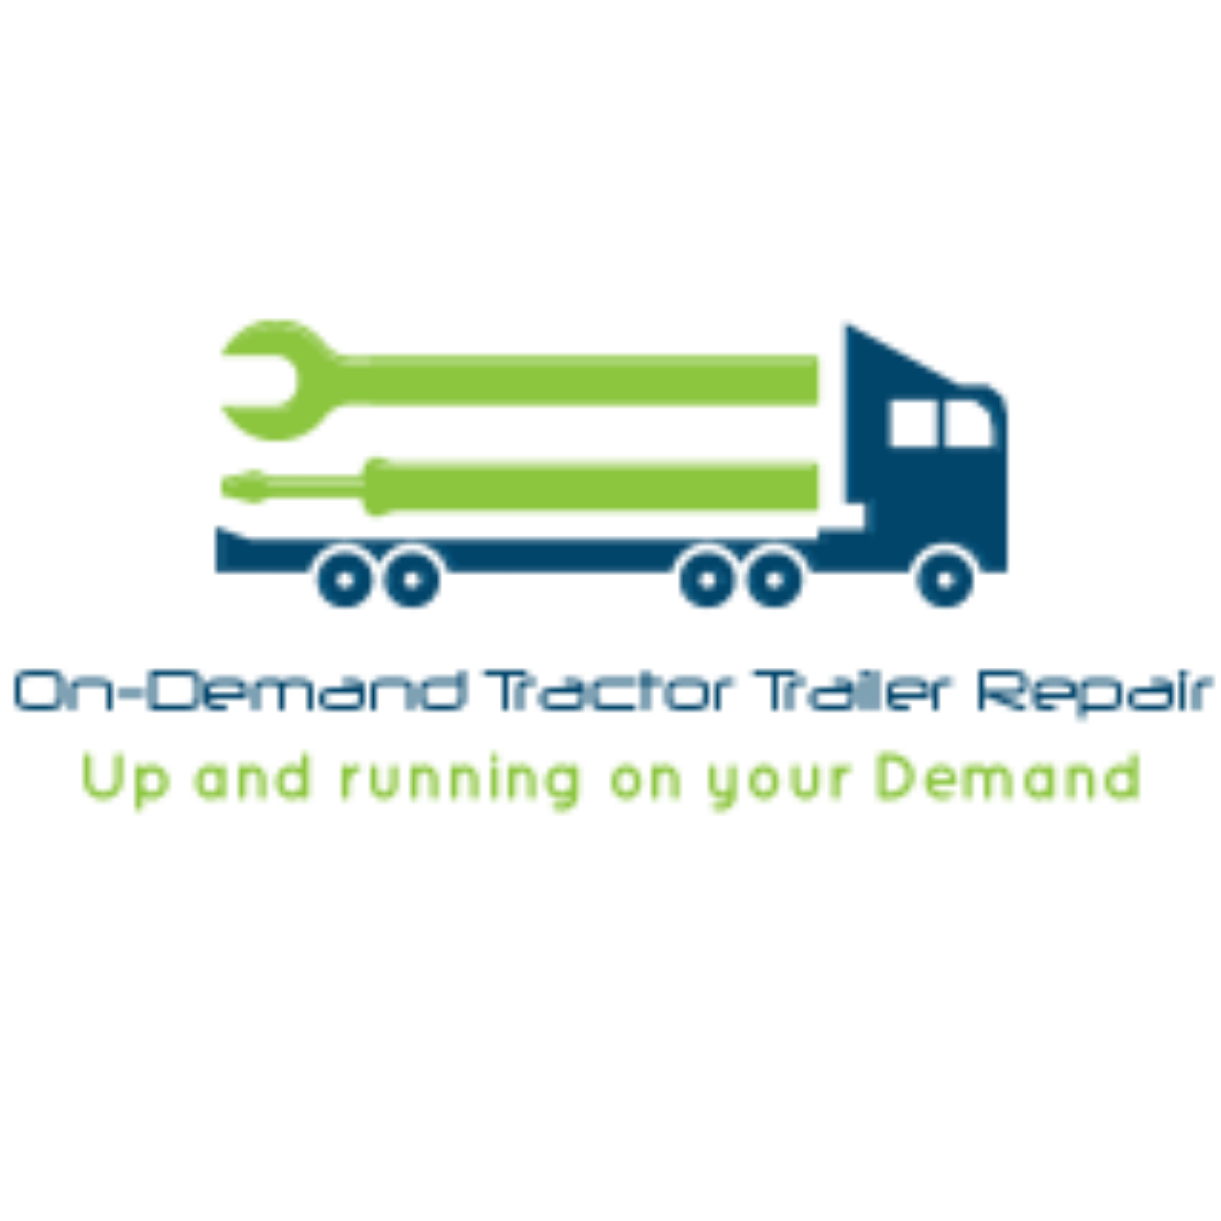 On-Demand Mobile Truck Repair